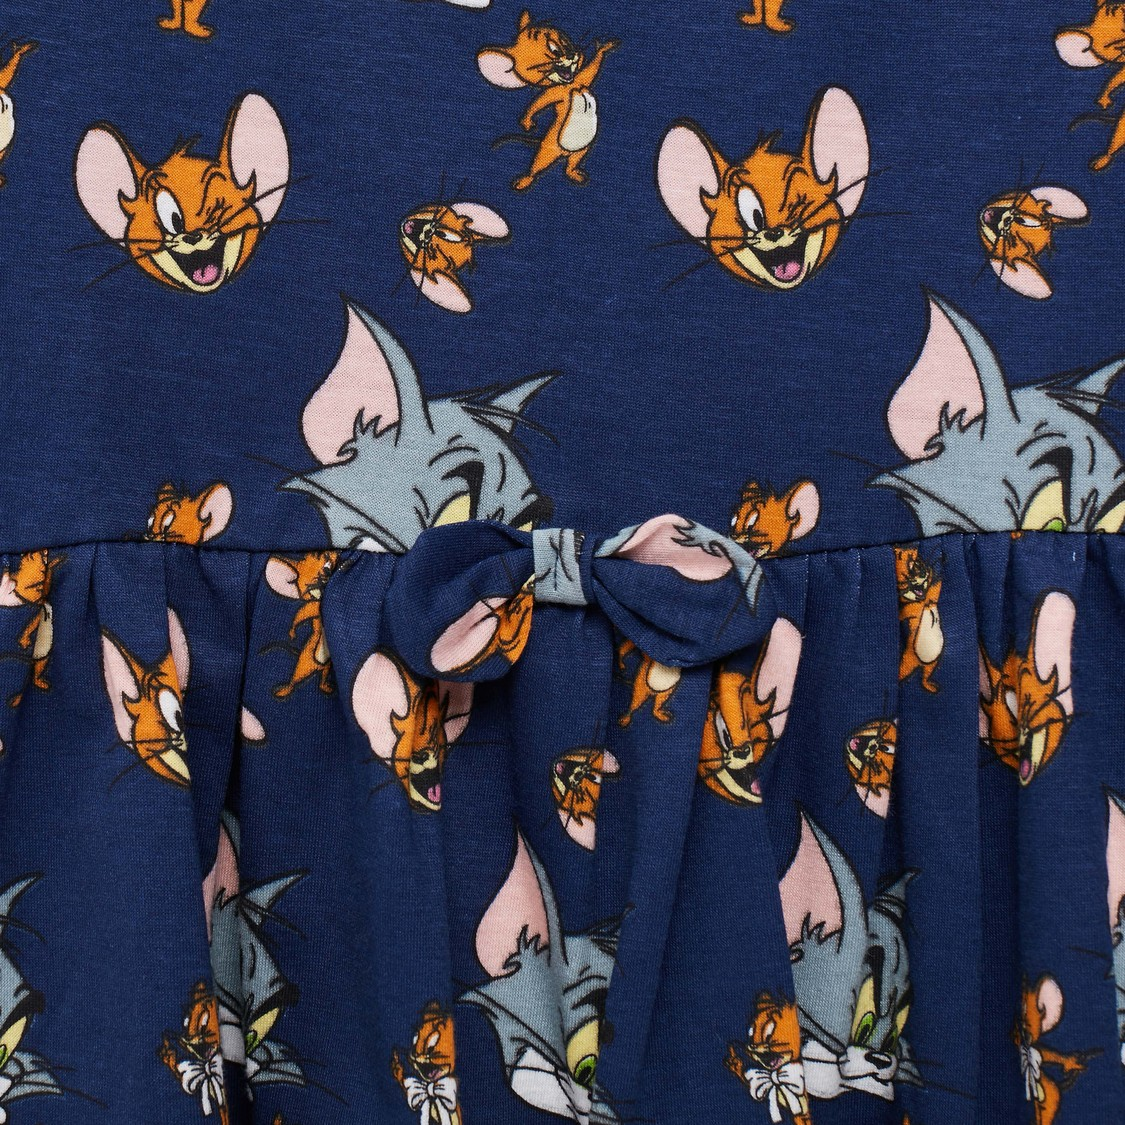 Tom and Jerry Print Dress with Long Sleeves and Bow Applique